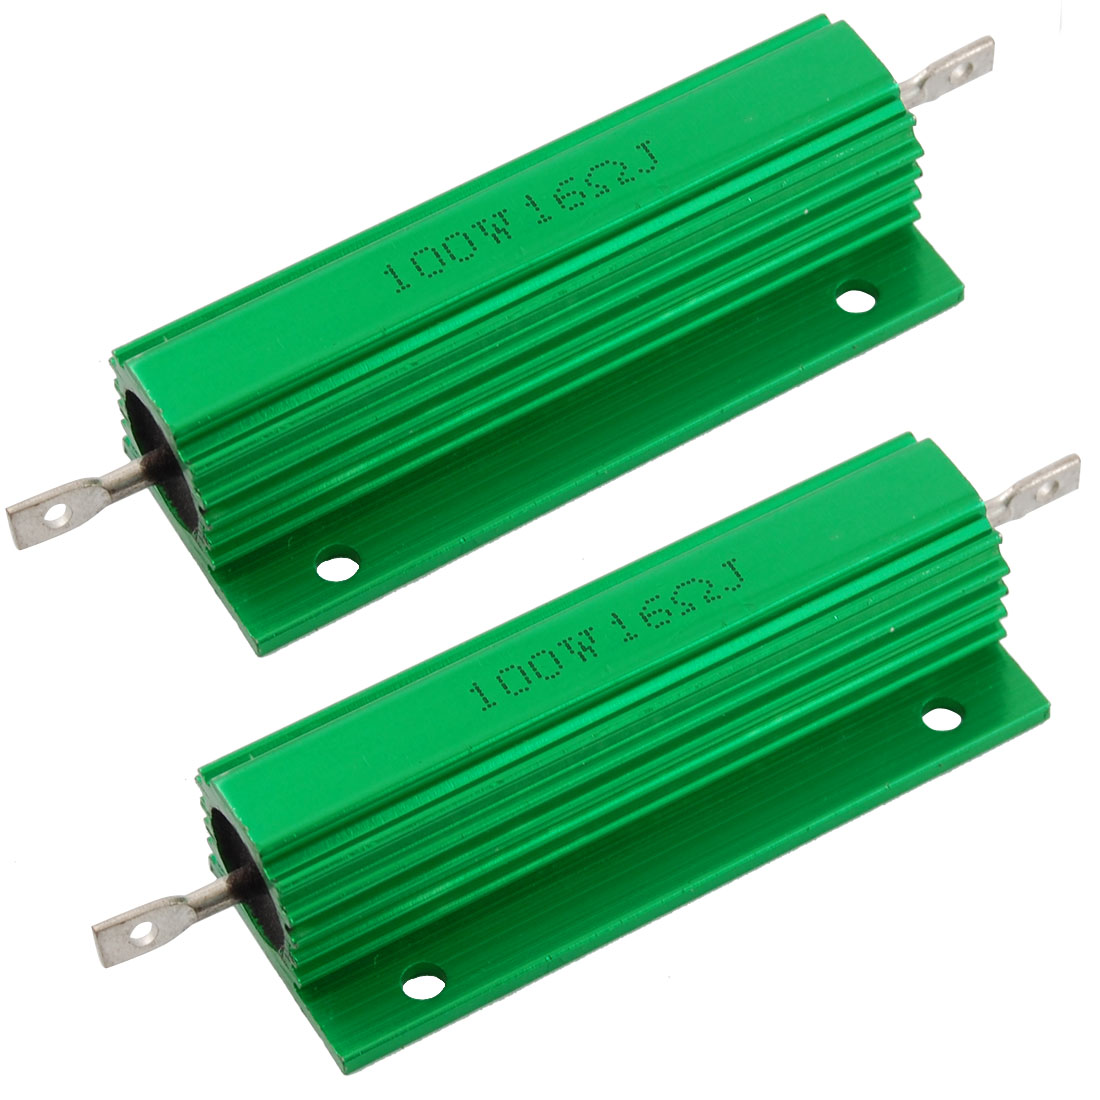 2 Pcs Green 100 Watt 16 Ohm 5% Aluminum Shell Wire Wound Resistors